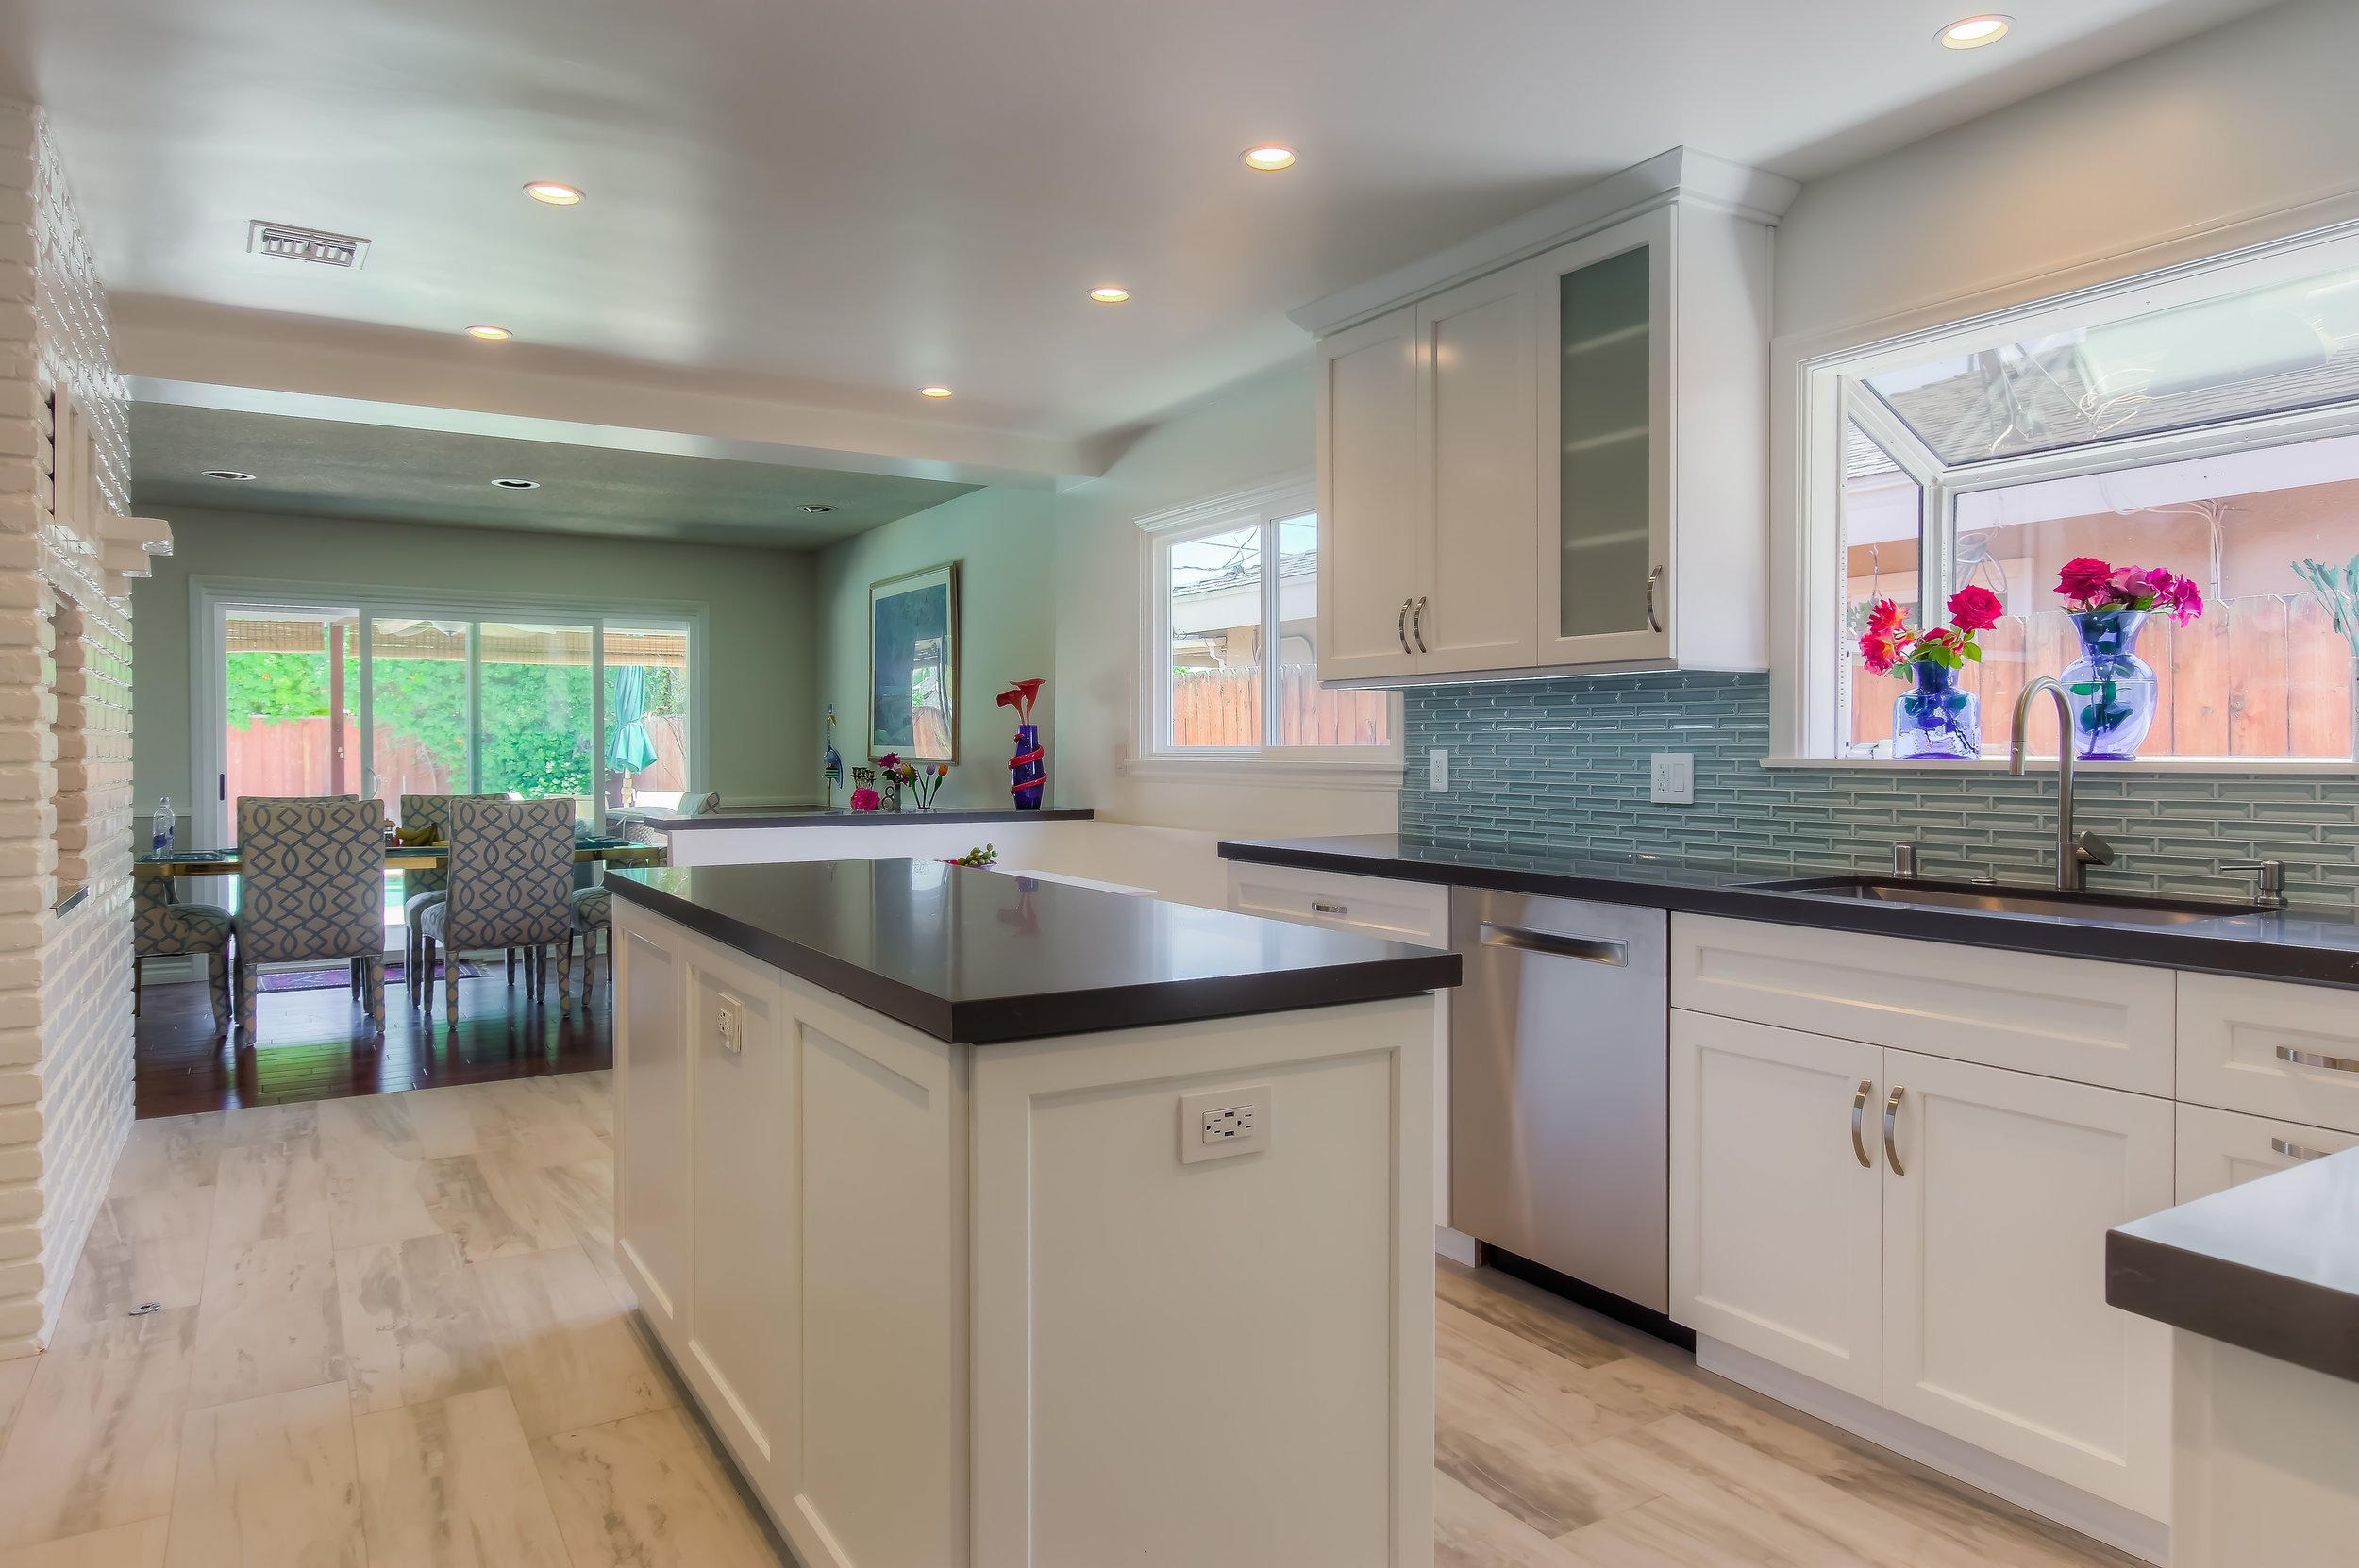 Toluca Lake custom kitchen remodel